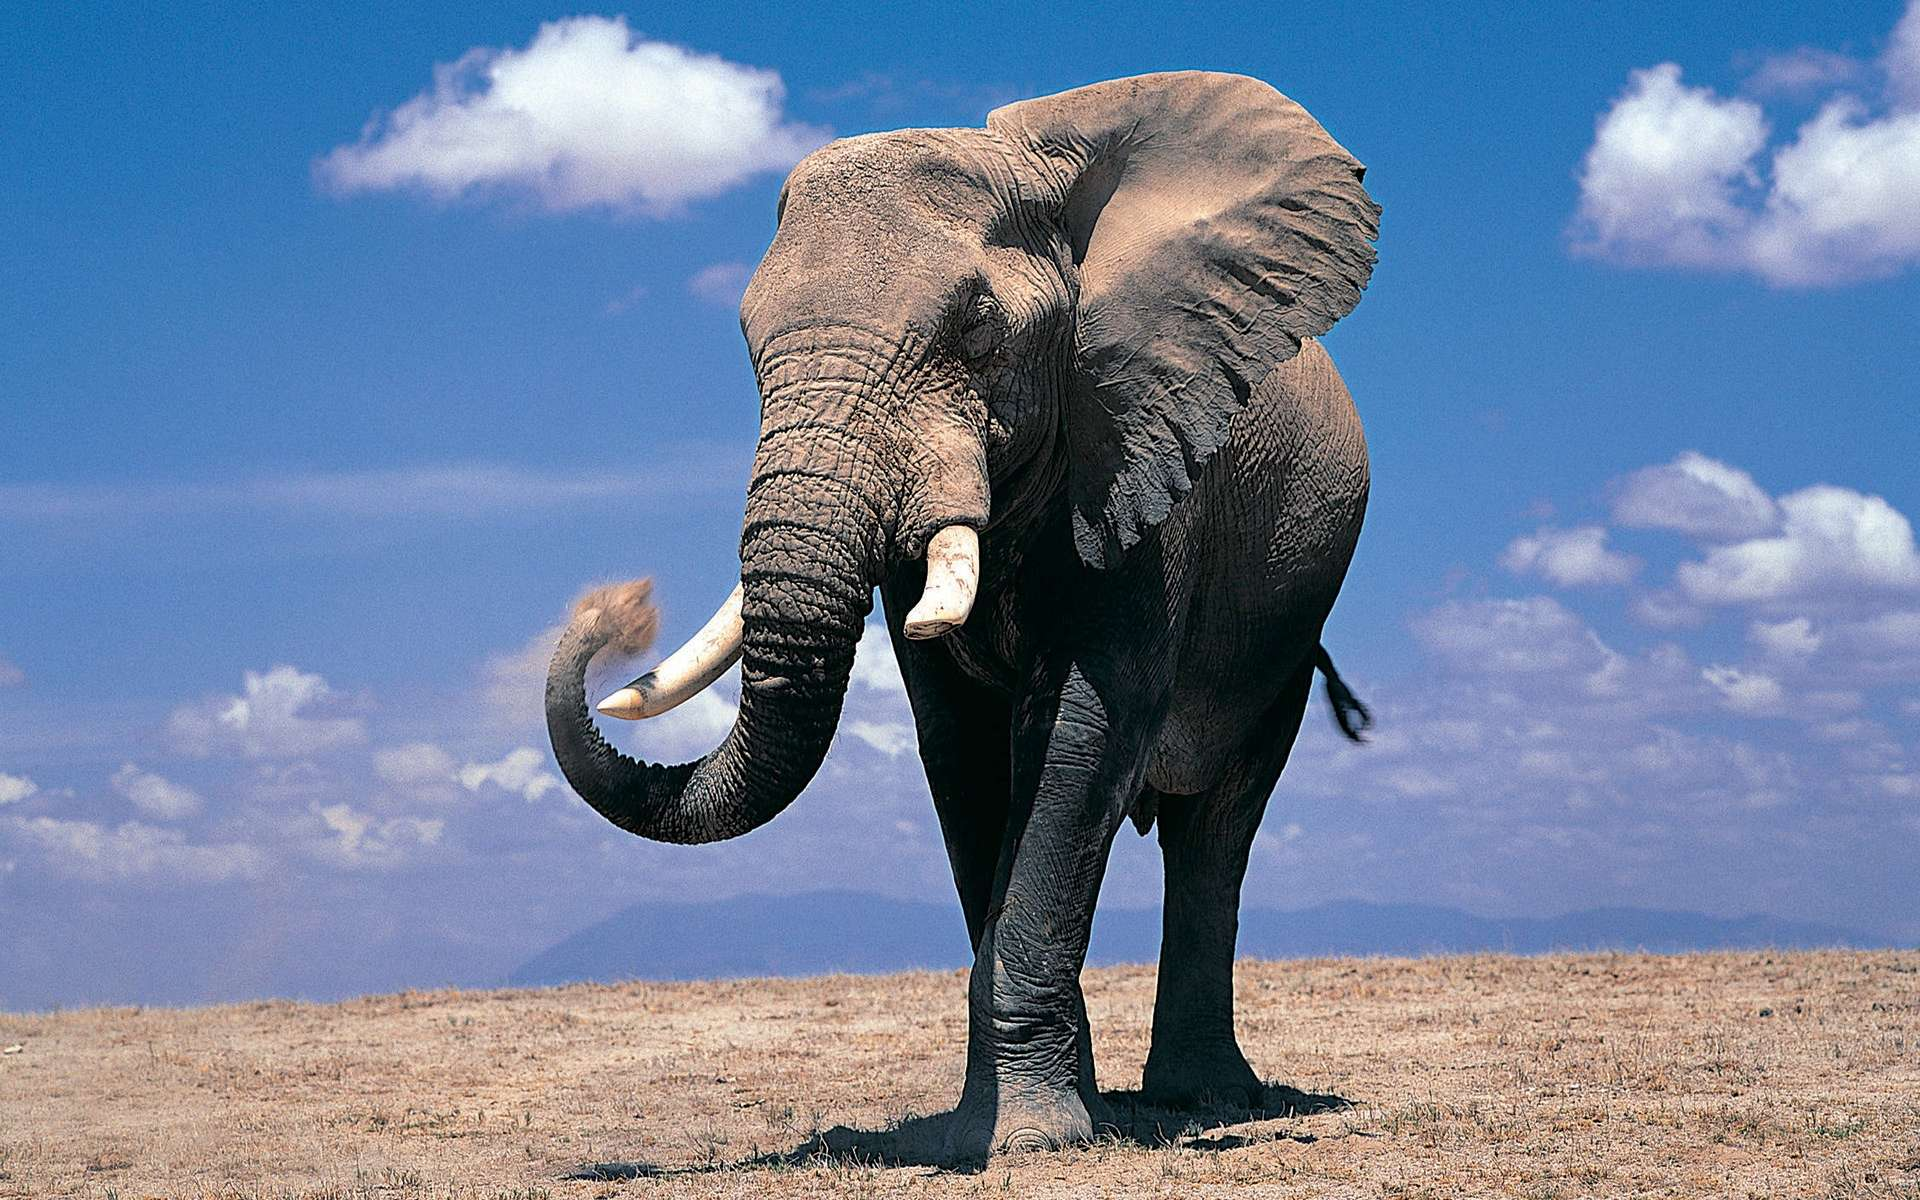 Elephant Computer Wallpapers, Desktop Backgrounds 1920x1200 Id: 324220